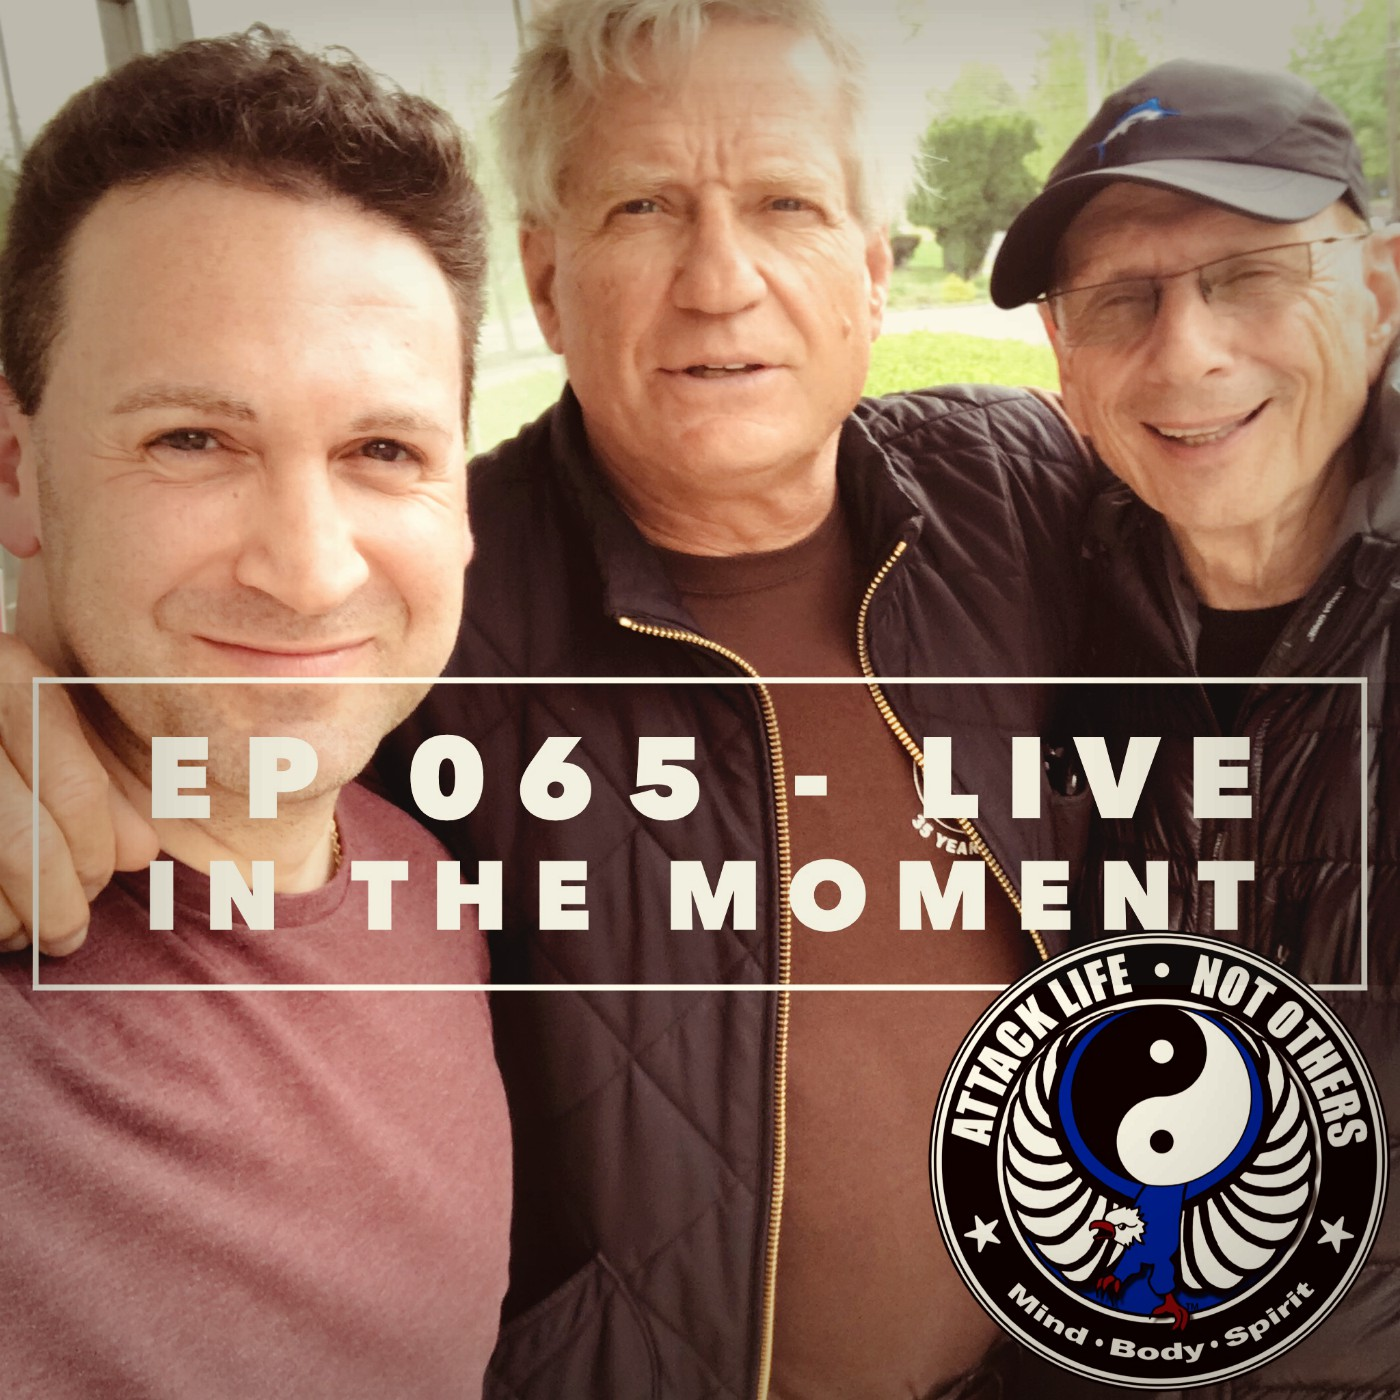 Ep 065 - Live In The Moment, Steve Mittman, Tim Hoover, Bernie Garber